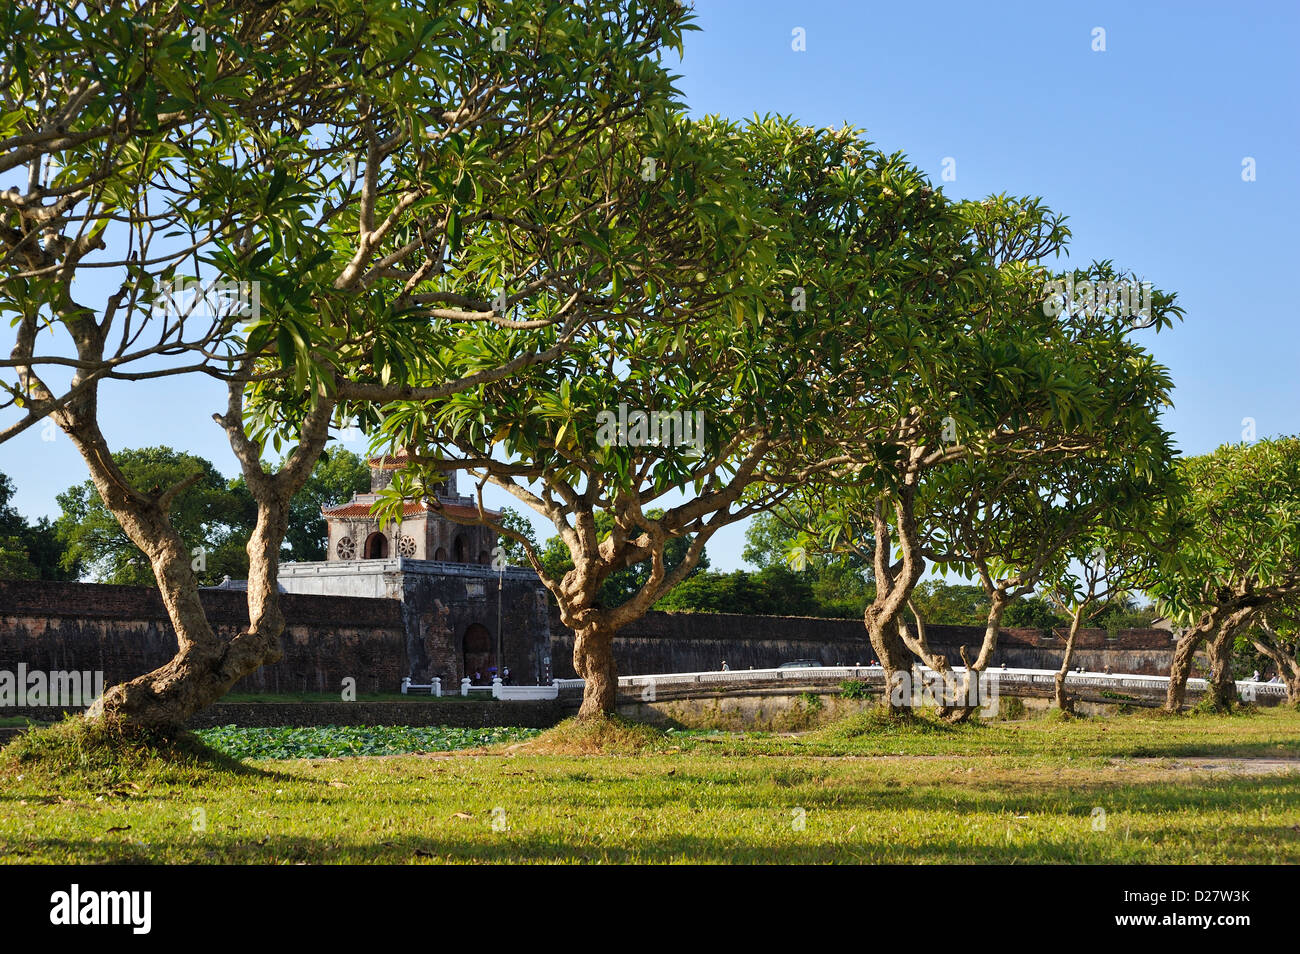 Trees by the moat around the Citadel of Hue, Vietnam with one of the gates in the background - Stock Image